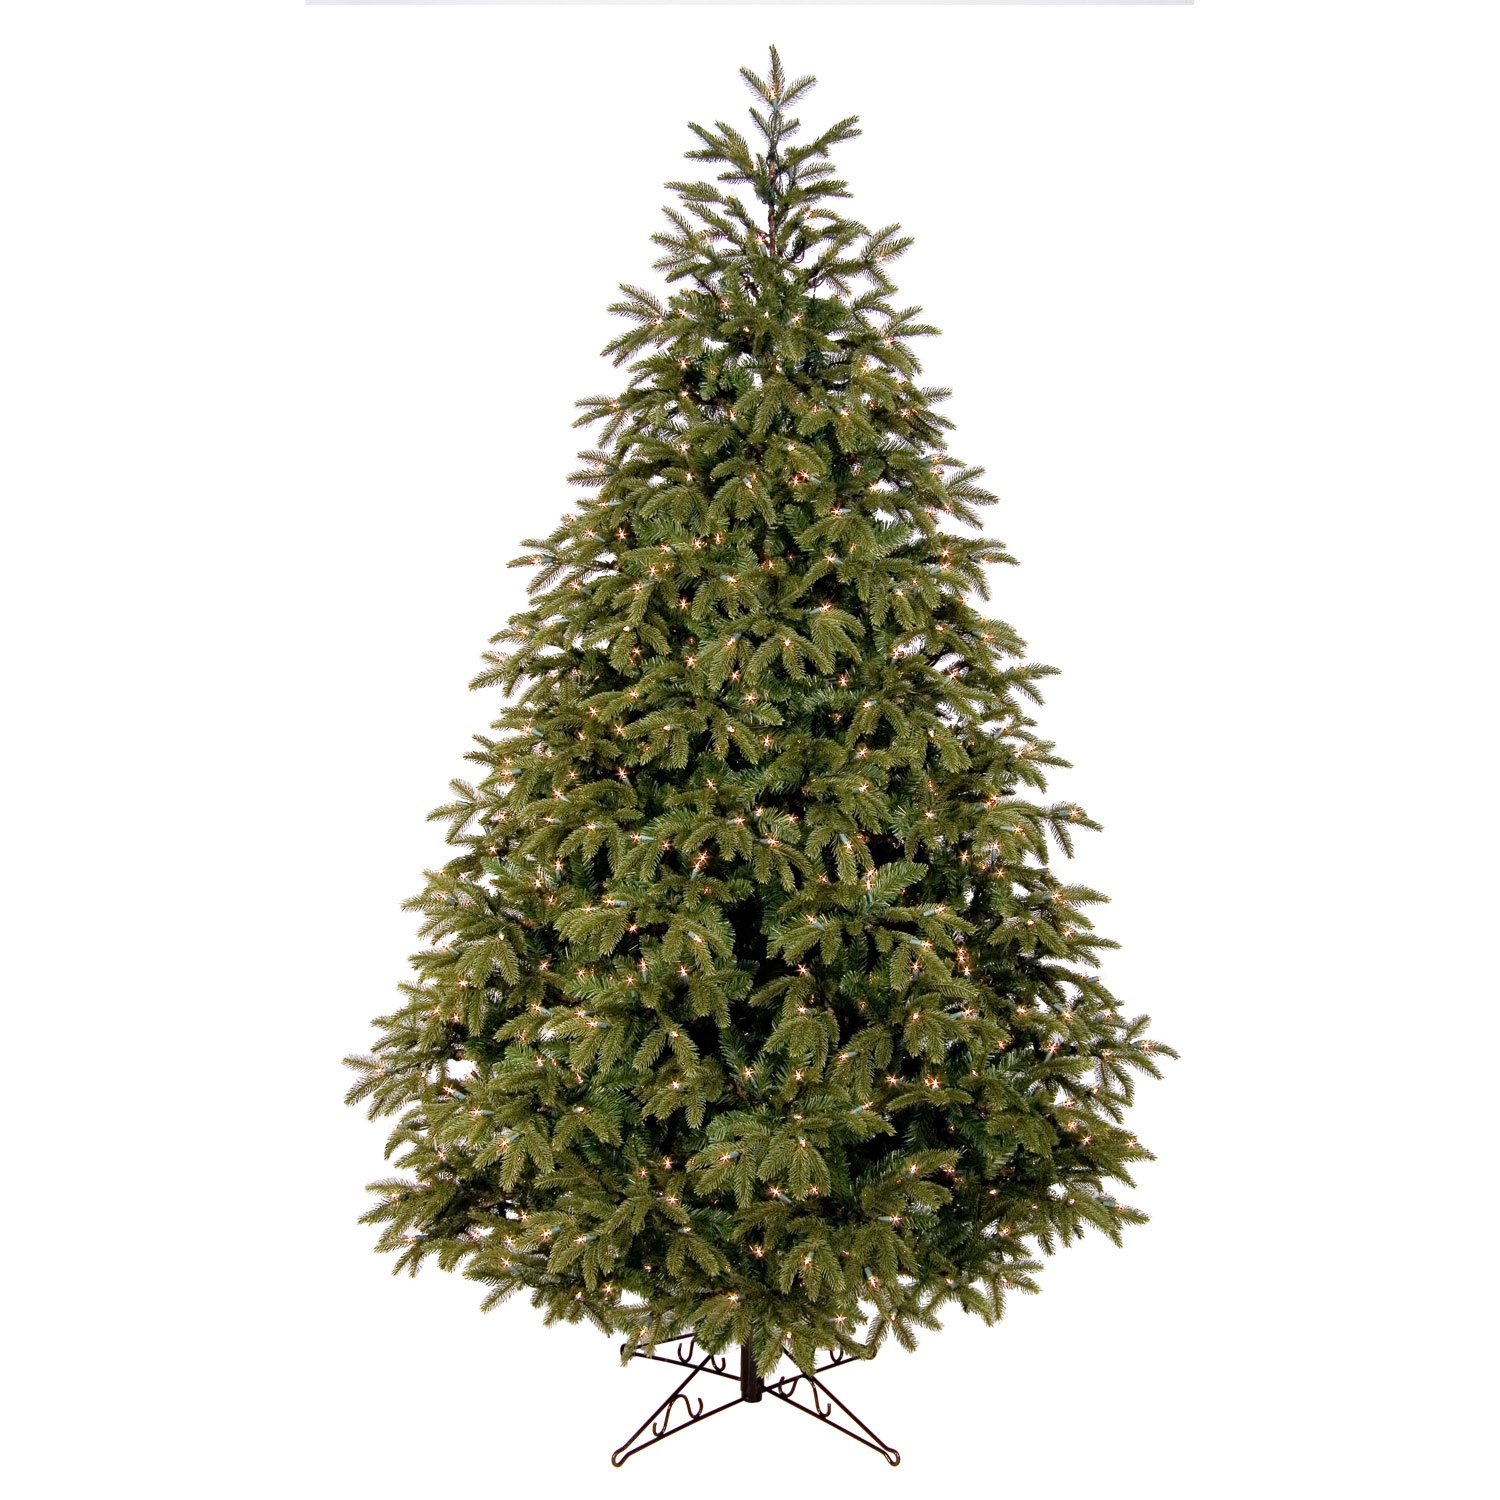 Fraser Fir Prelit Tree - Christmas Lights, Etc